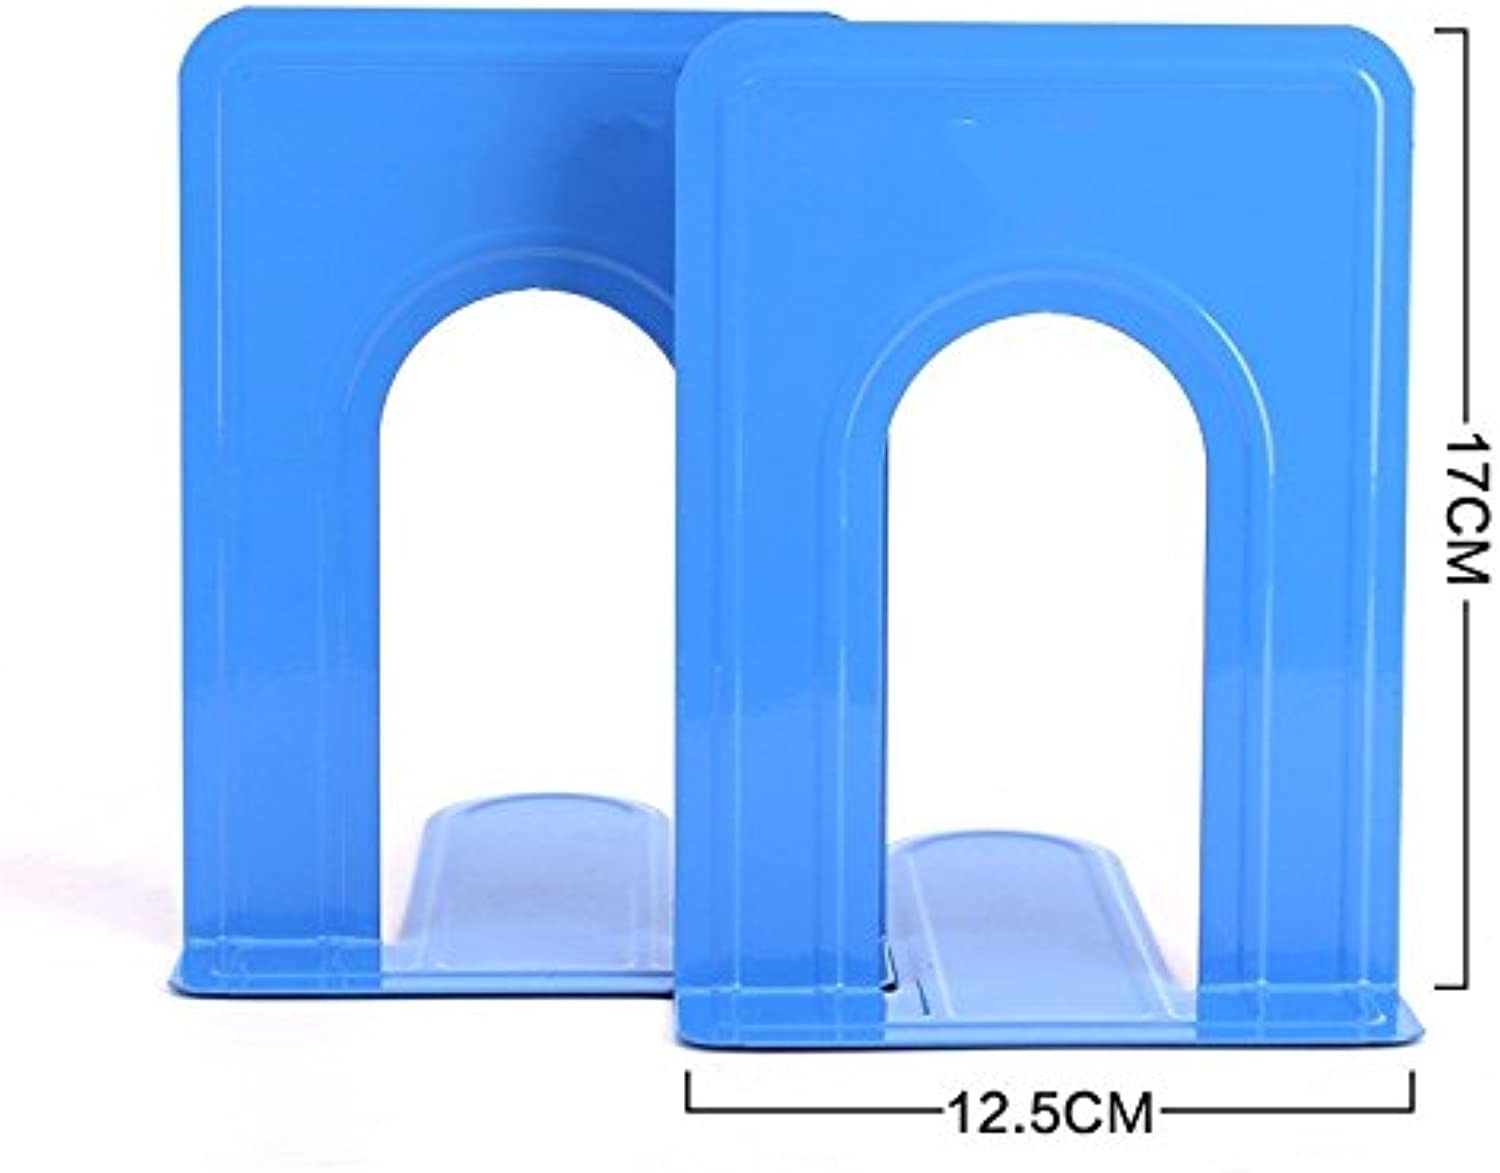 STJK BMJW Office Book color Metal Bookshelf Book Book By Student Stati1Ry Baffle Bookends 6.5 Inch bluee